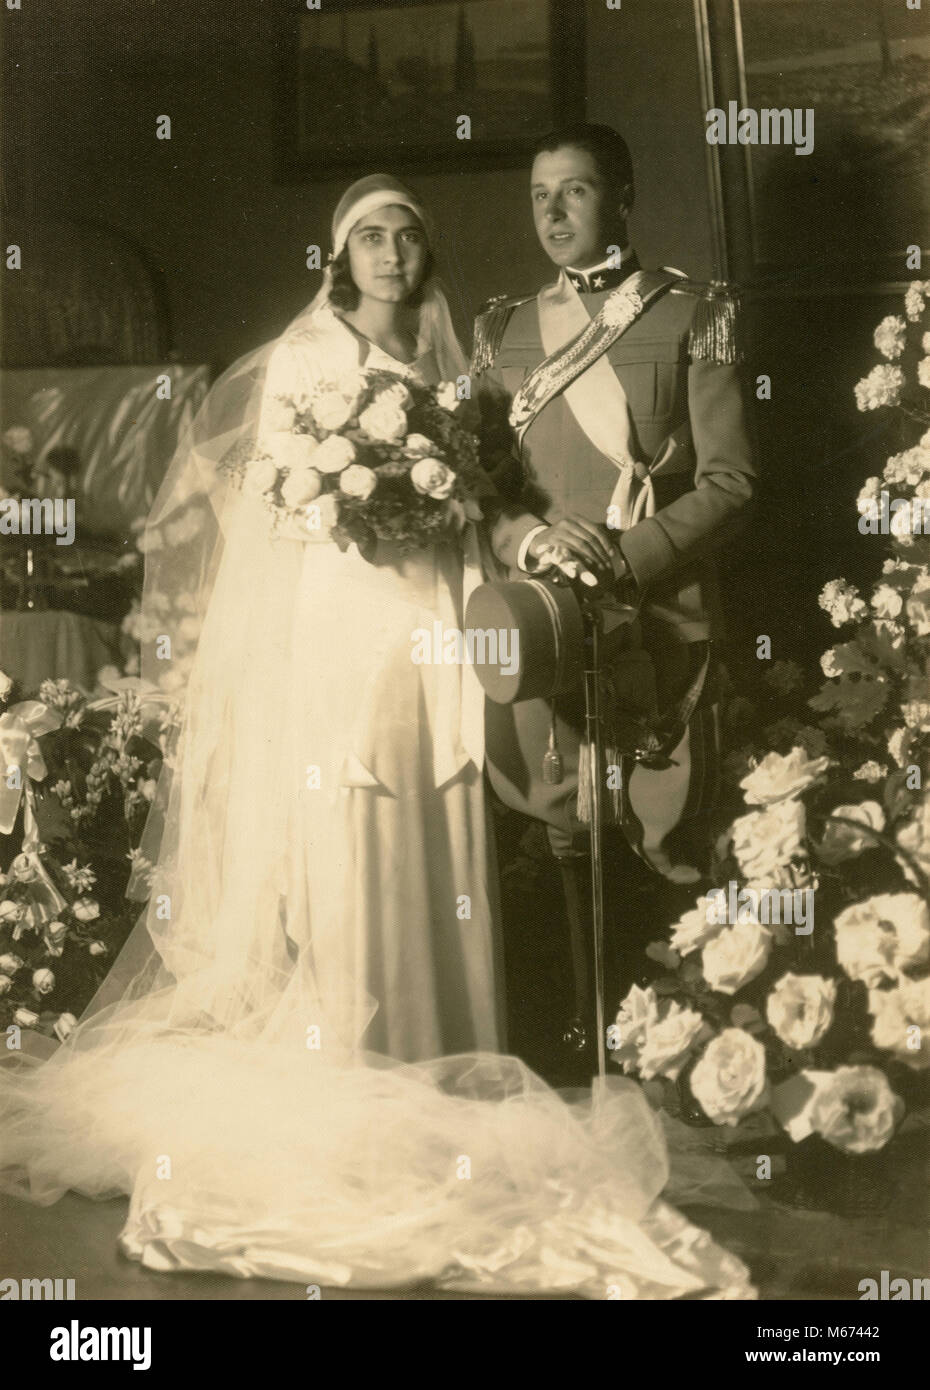 Just married, Italy 1930s - Stock Image